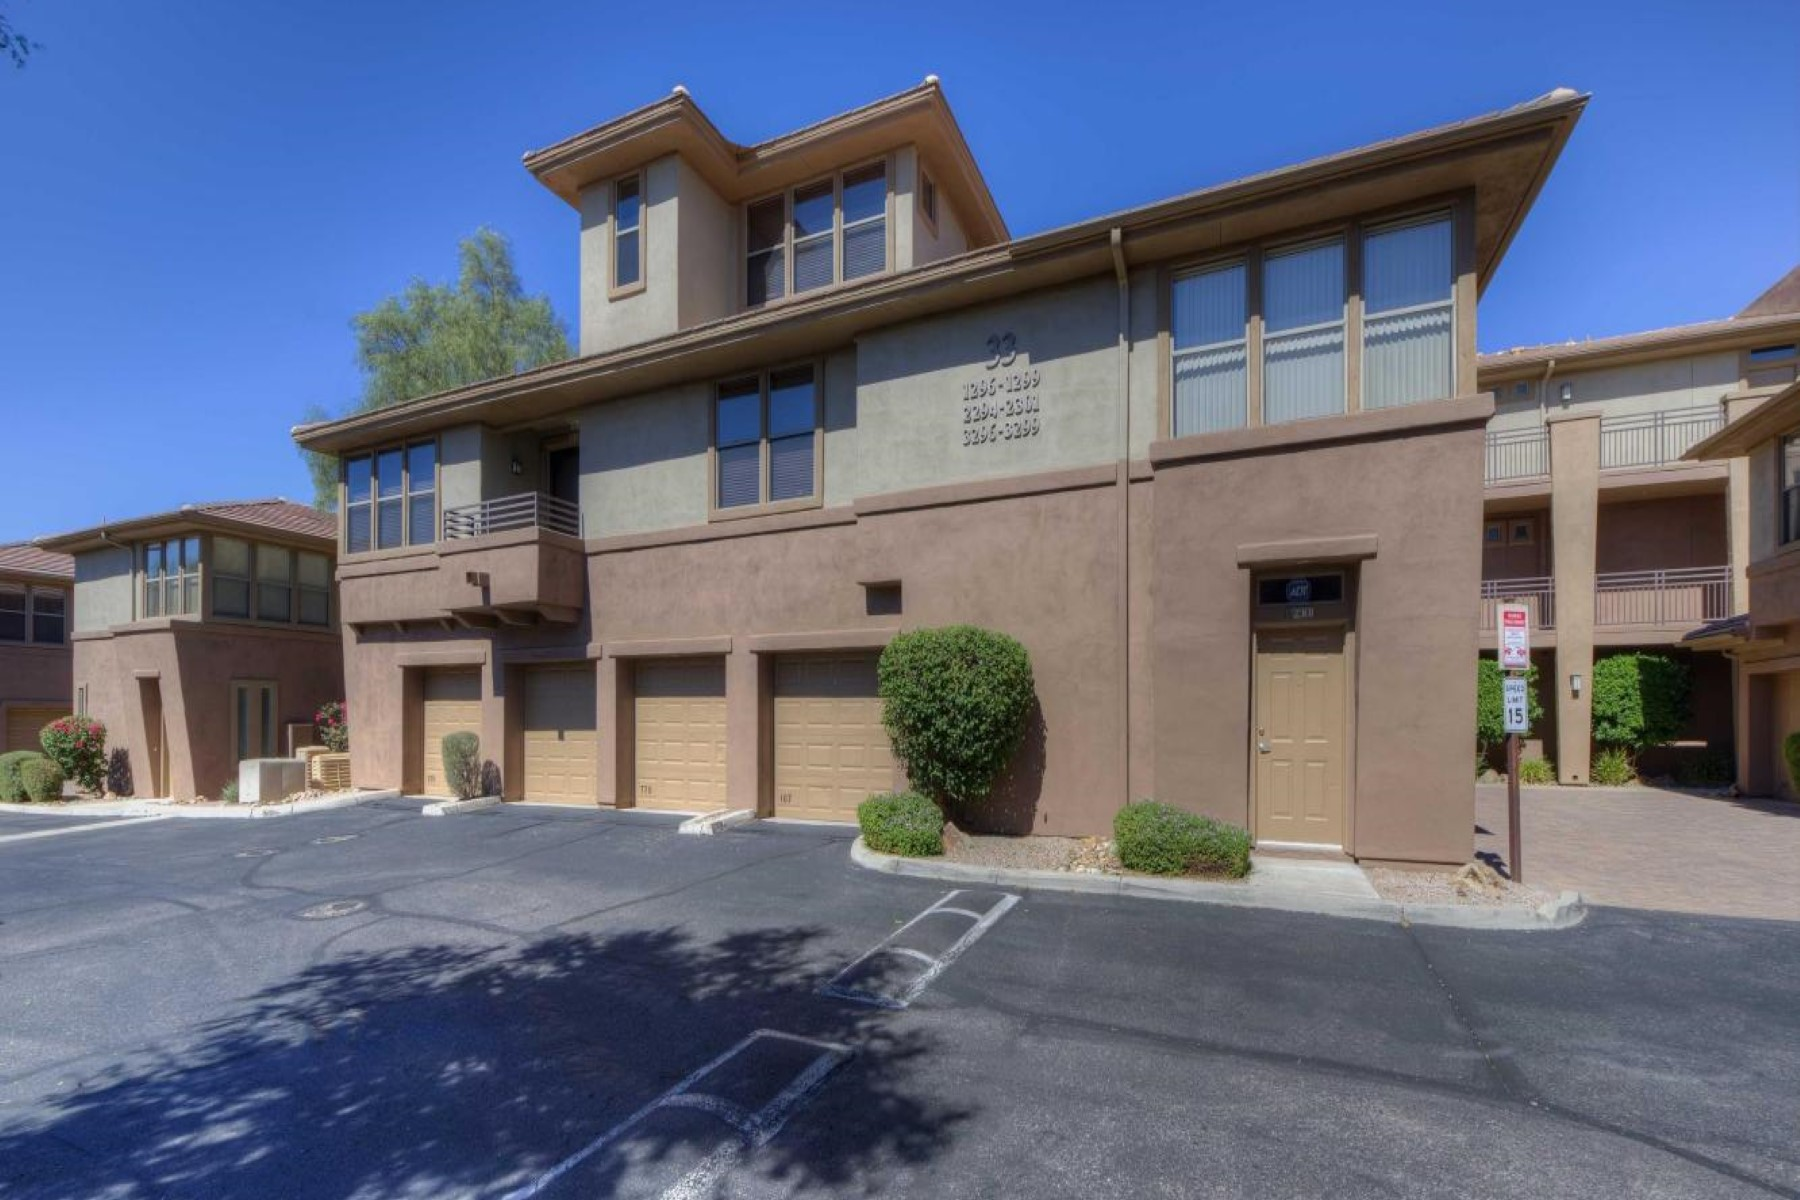 Apartment for Sale at Hard to find, spacious and updated one bedroom with attached garage 19777 N 76th St 2301 Scottsdale, Arizona, 85255 United States